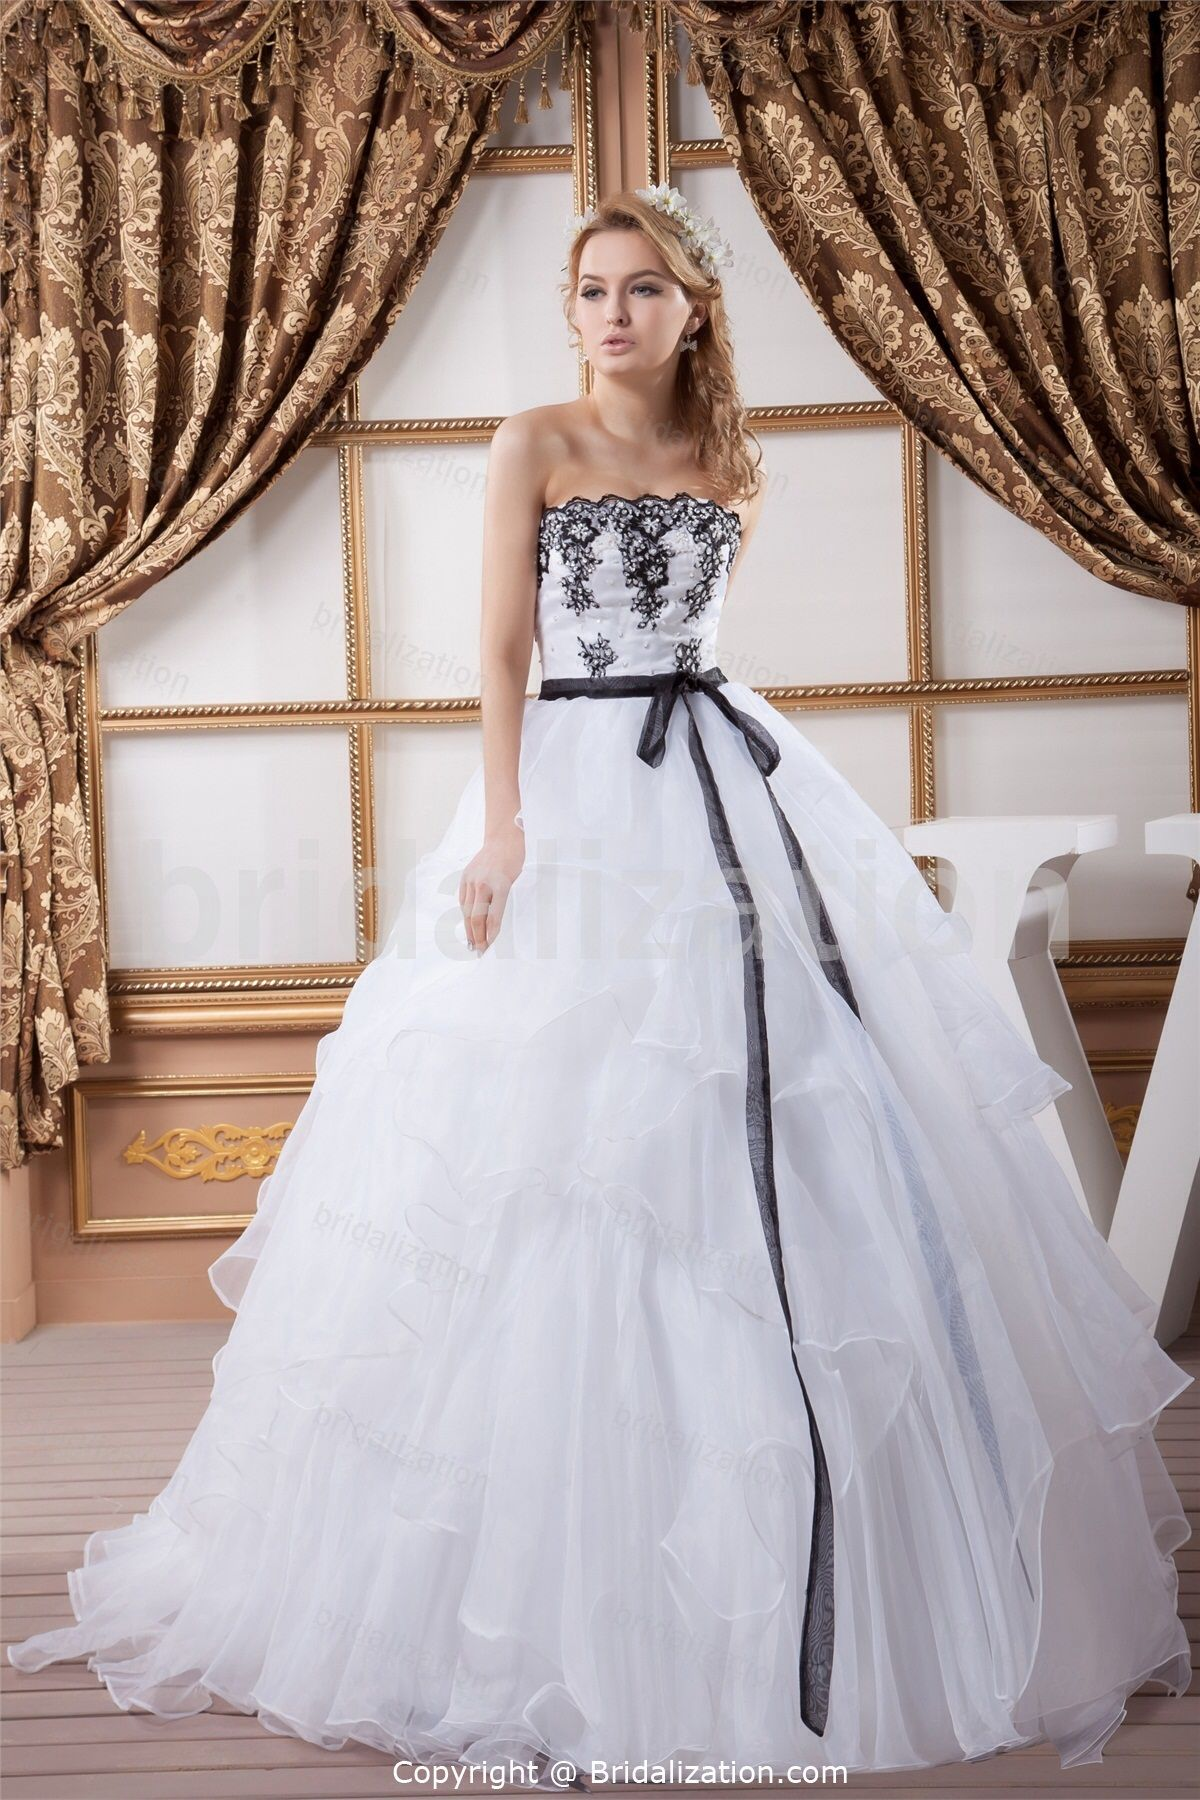 Strapless ball gown wedding dresses  Cool nontraditional  Someday  Pinterest